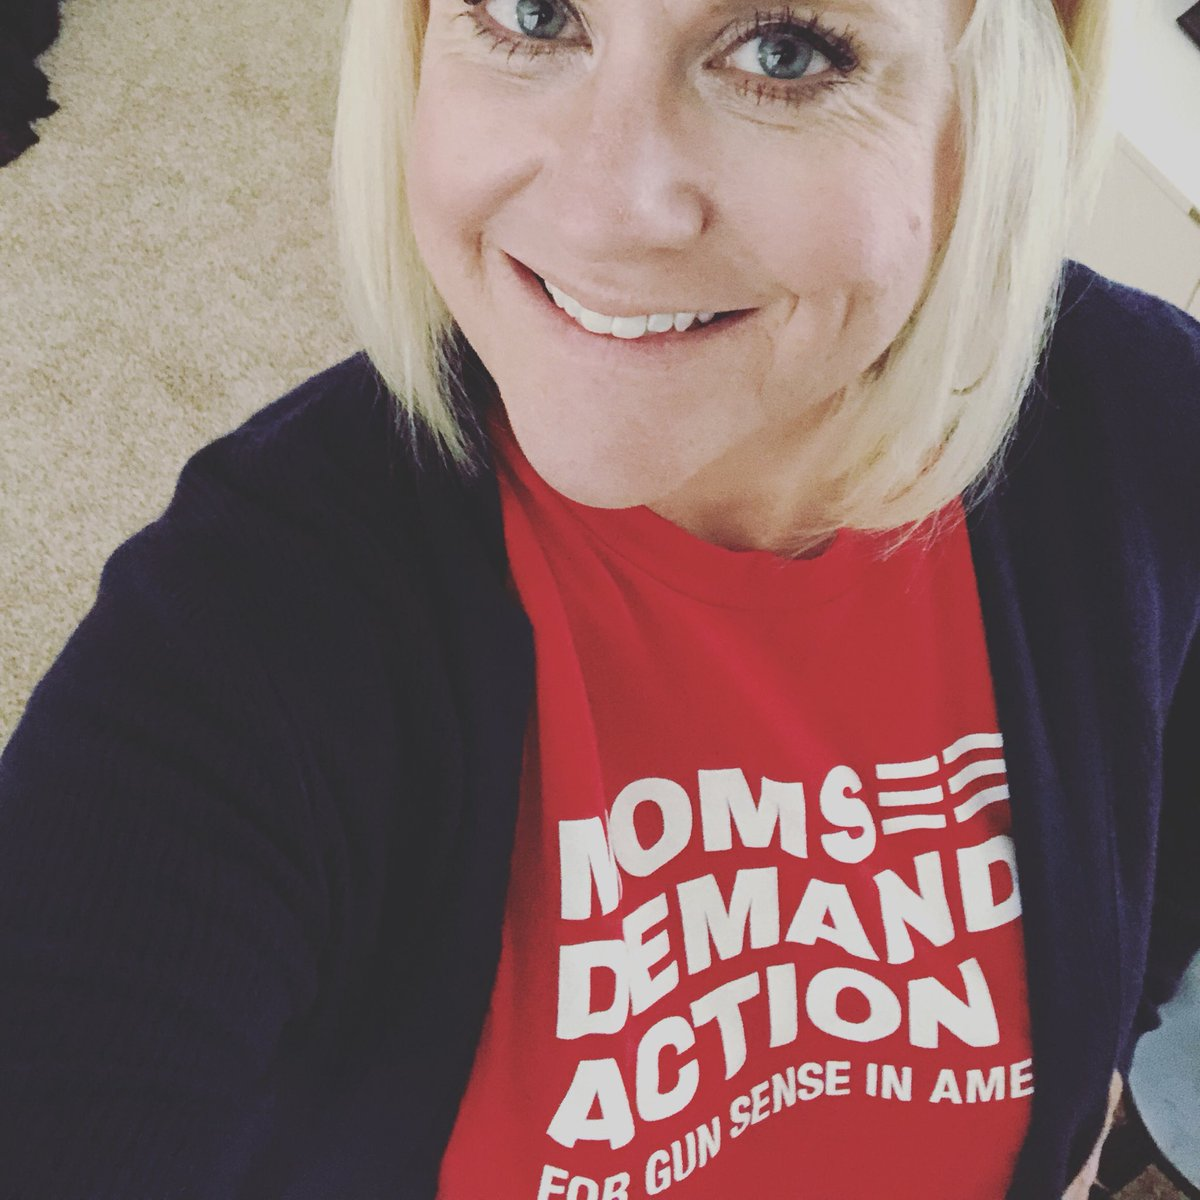 It&#39;s #TshirtTuesday and I&#39;m off to Field Registrar training to learn how to register voters in my county! @MomsDemand #ExpectUs<br>http://pic.twitter.com/NSaNbWwNPA